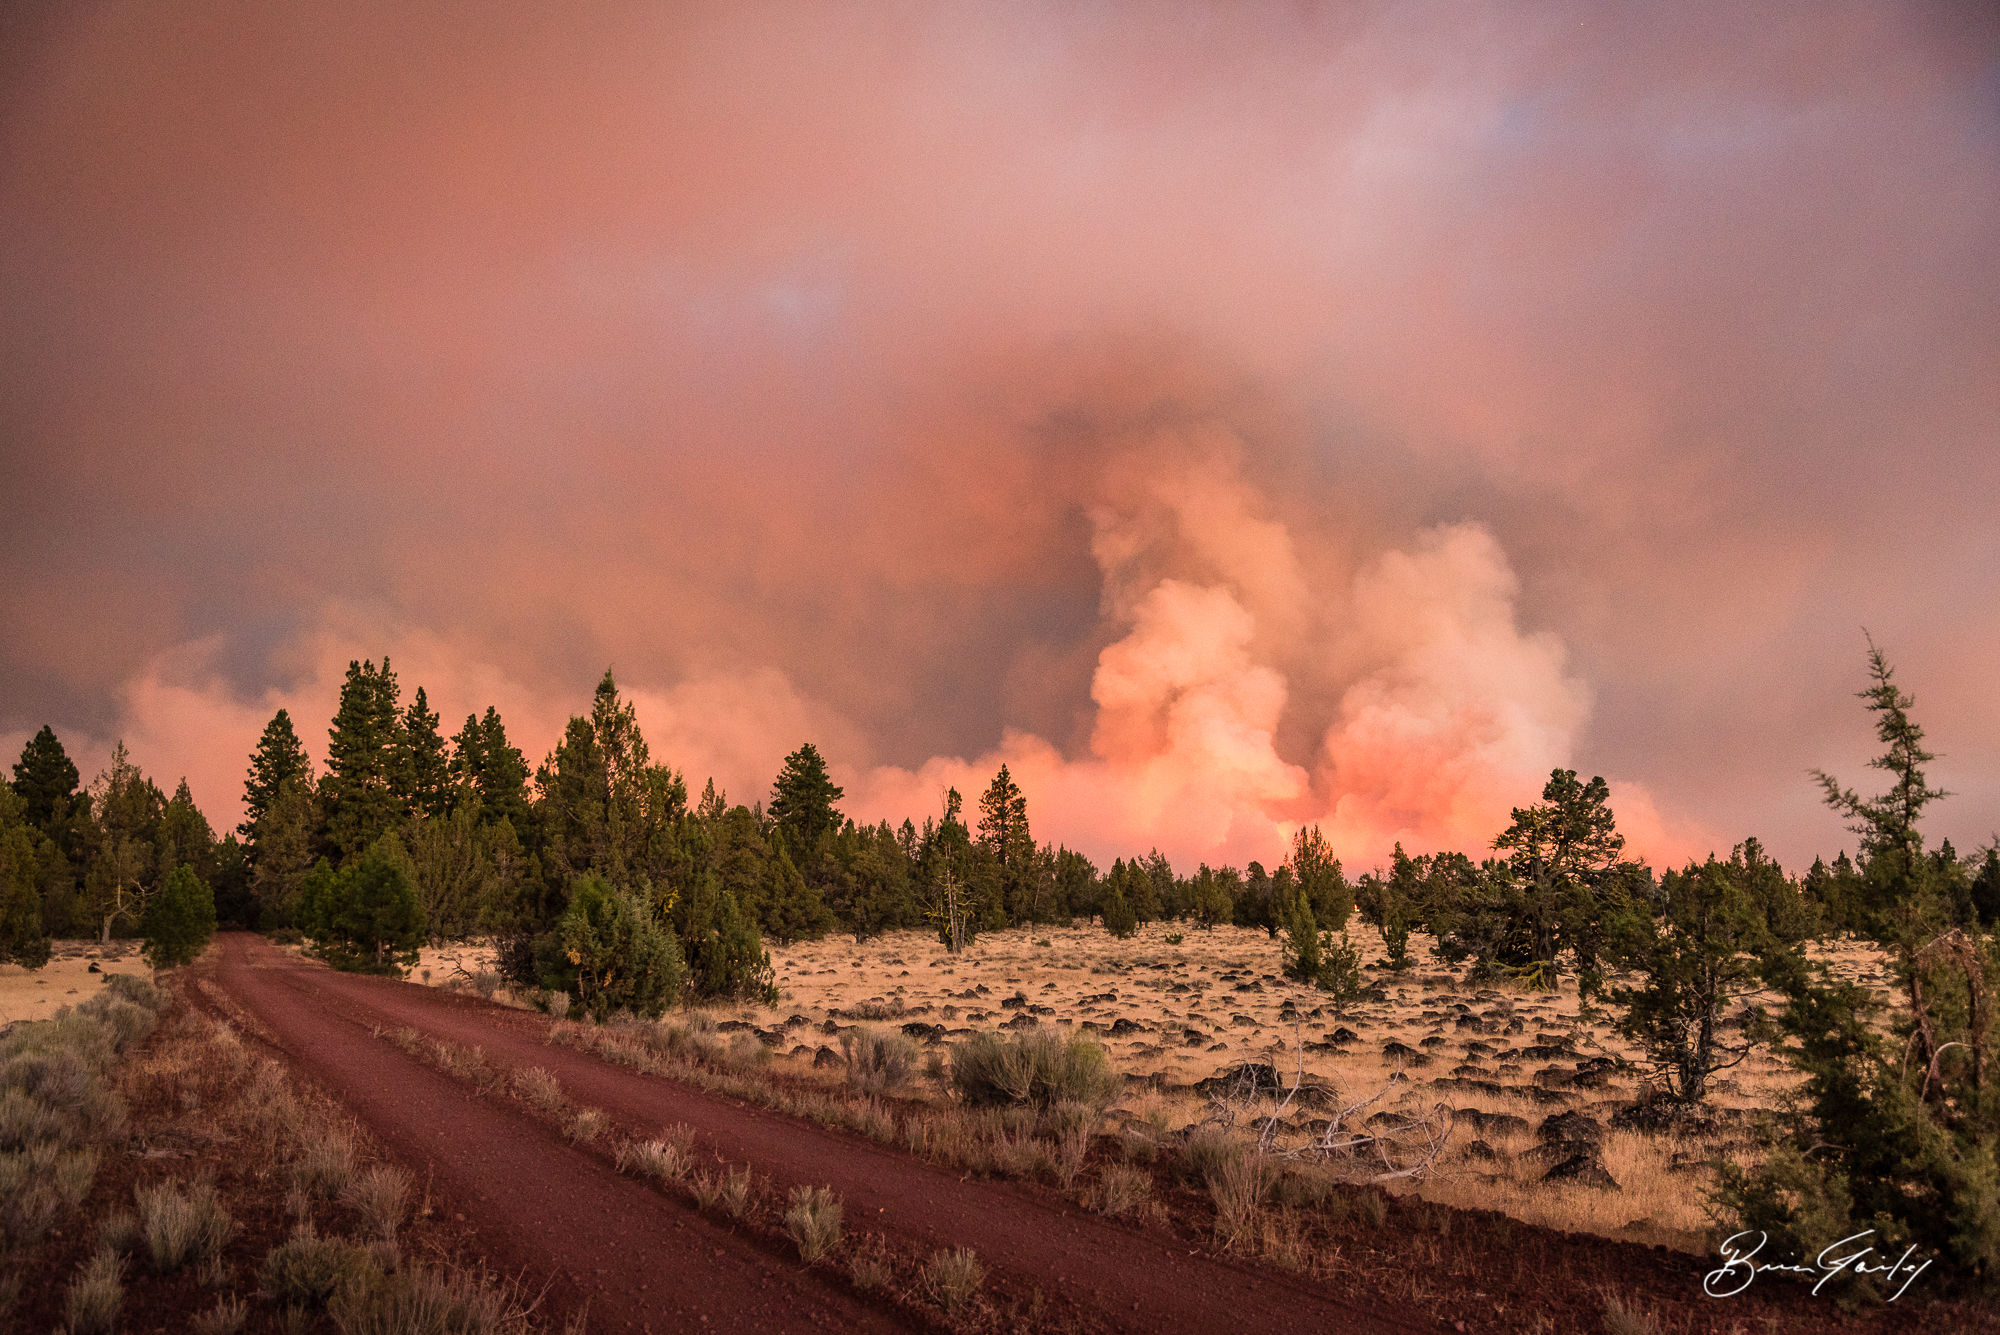 The 2017 Fire Season was a difficult season for local, state and federal resources. As of Oct. 20, 2017 the 2017 Fire Season in Klamath and Lake Counties has come to a close. File Photo of the Modoc July Complex. (Brian Gailey)